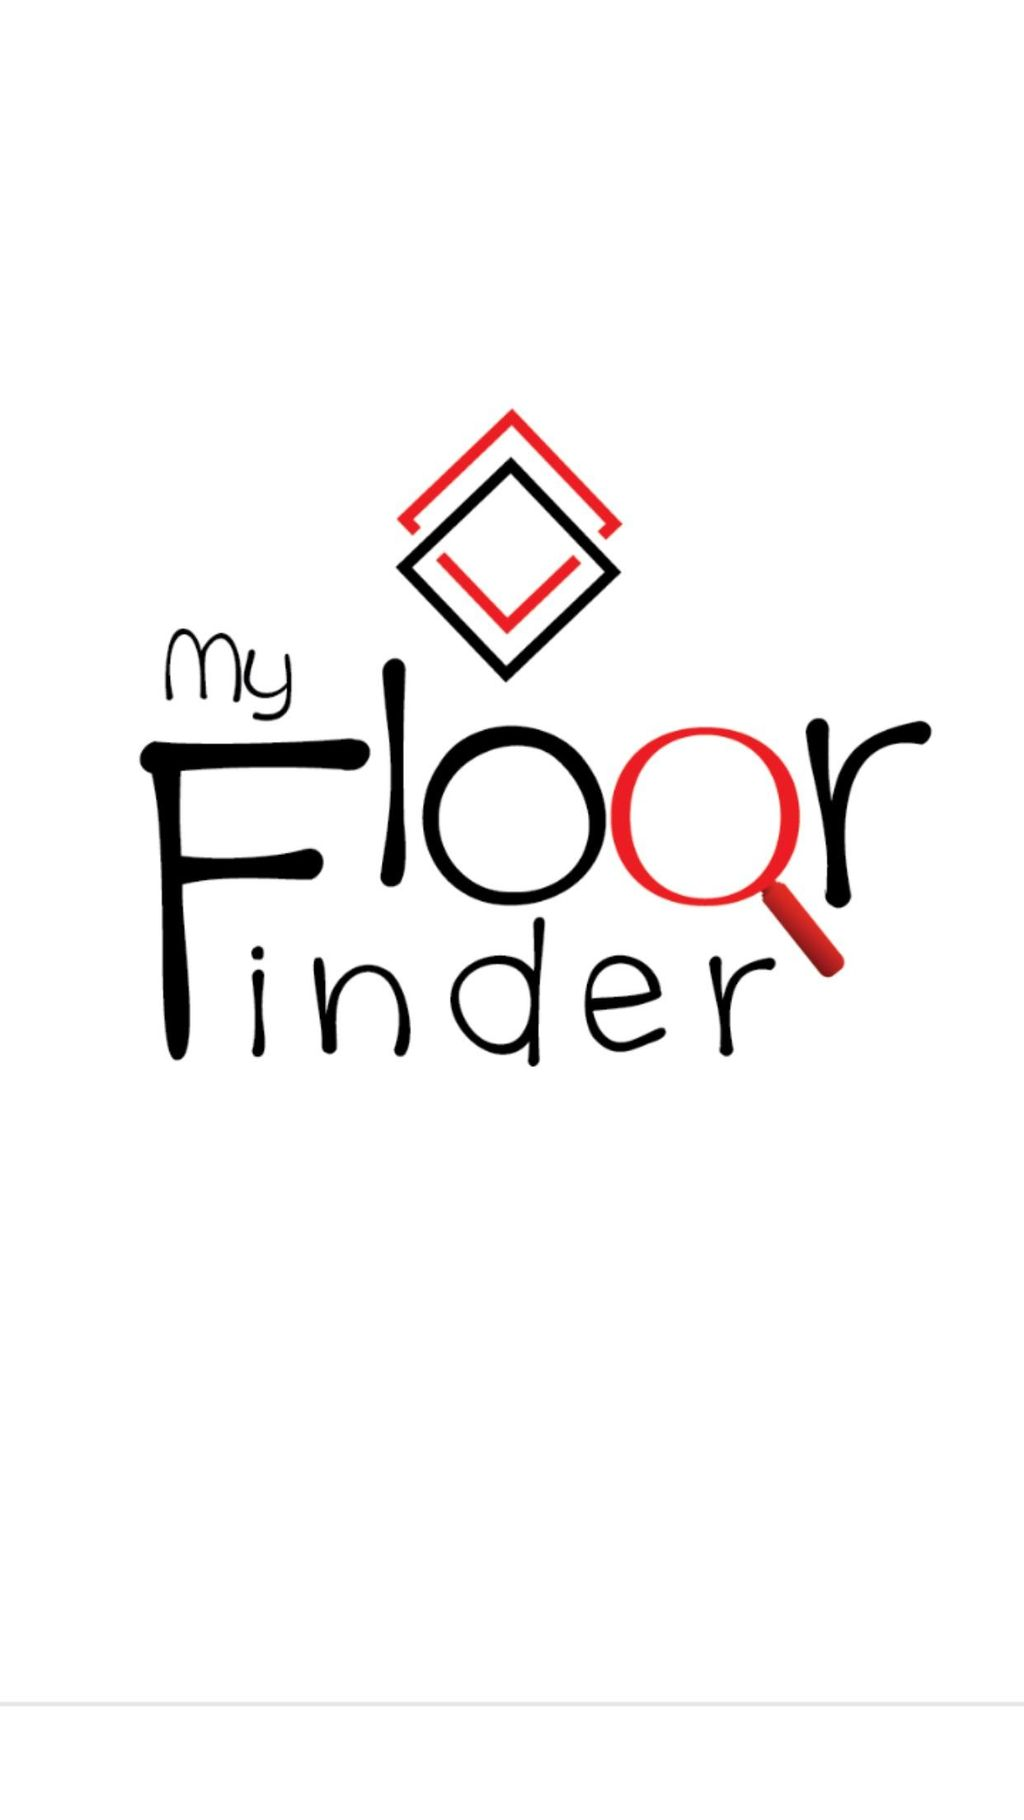 My Floor Finder